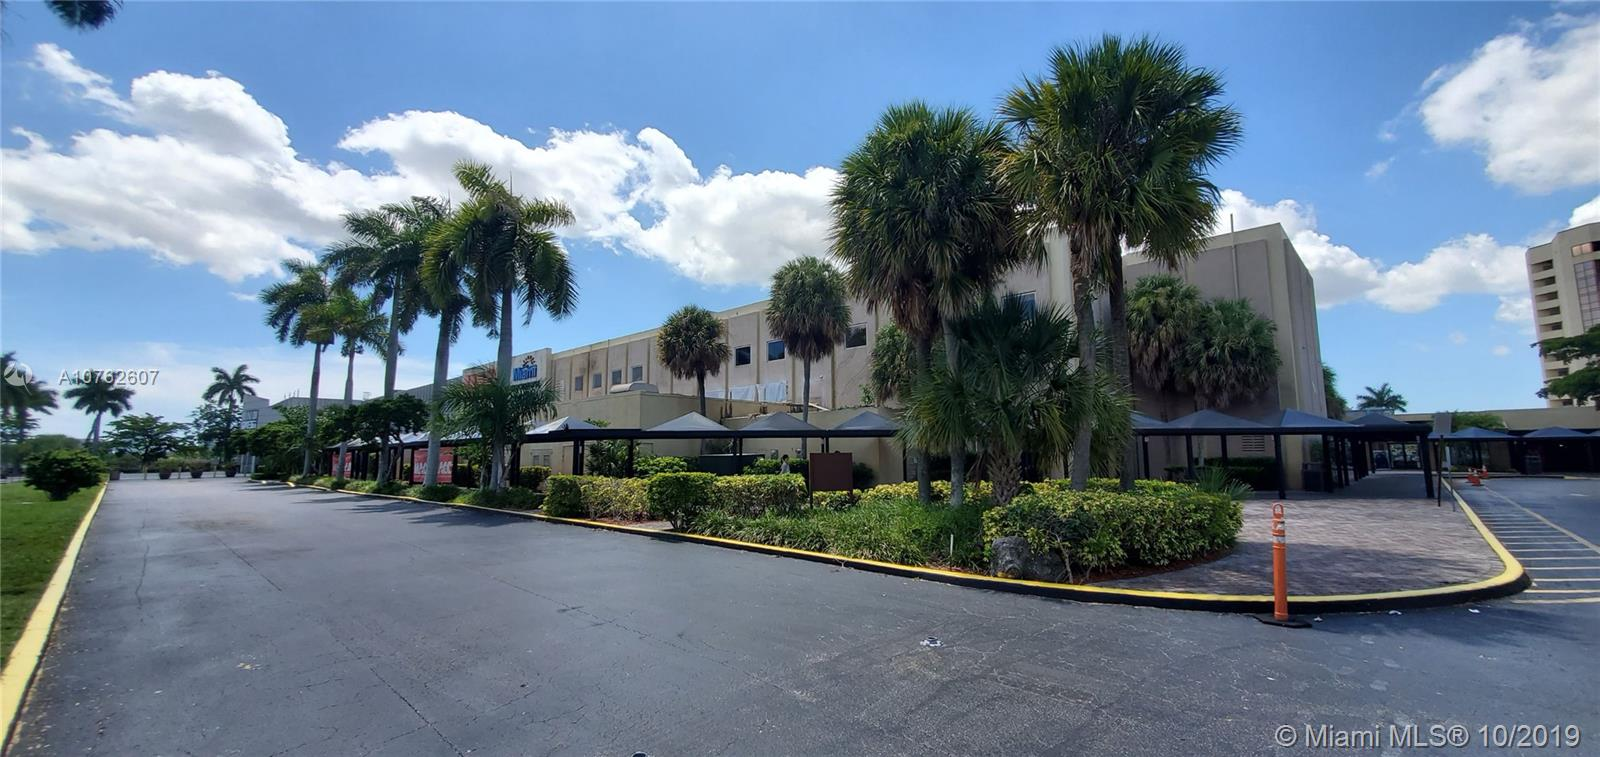 777 NW 72nd Ave #1019 For Sale A10762607, FL